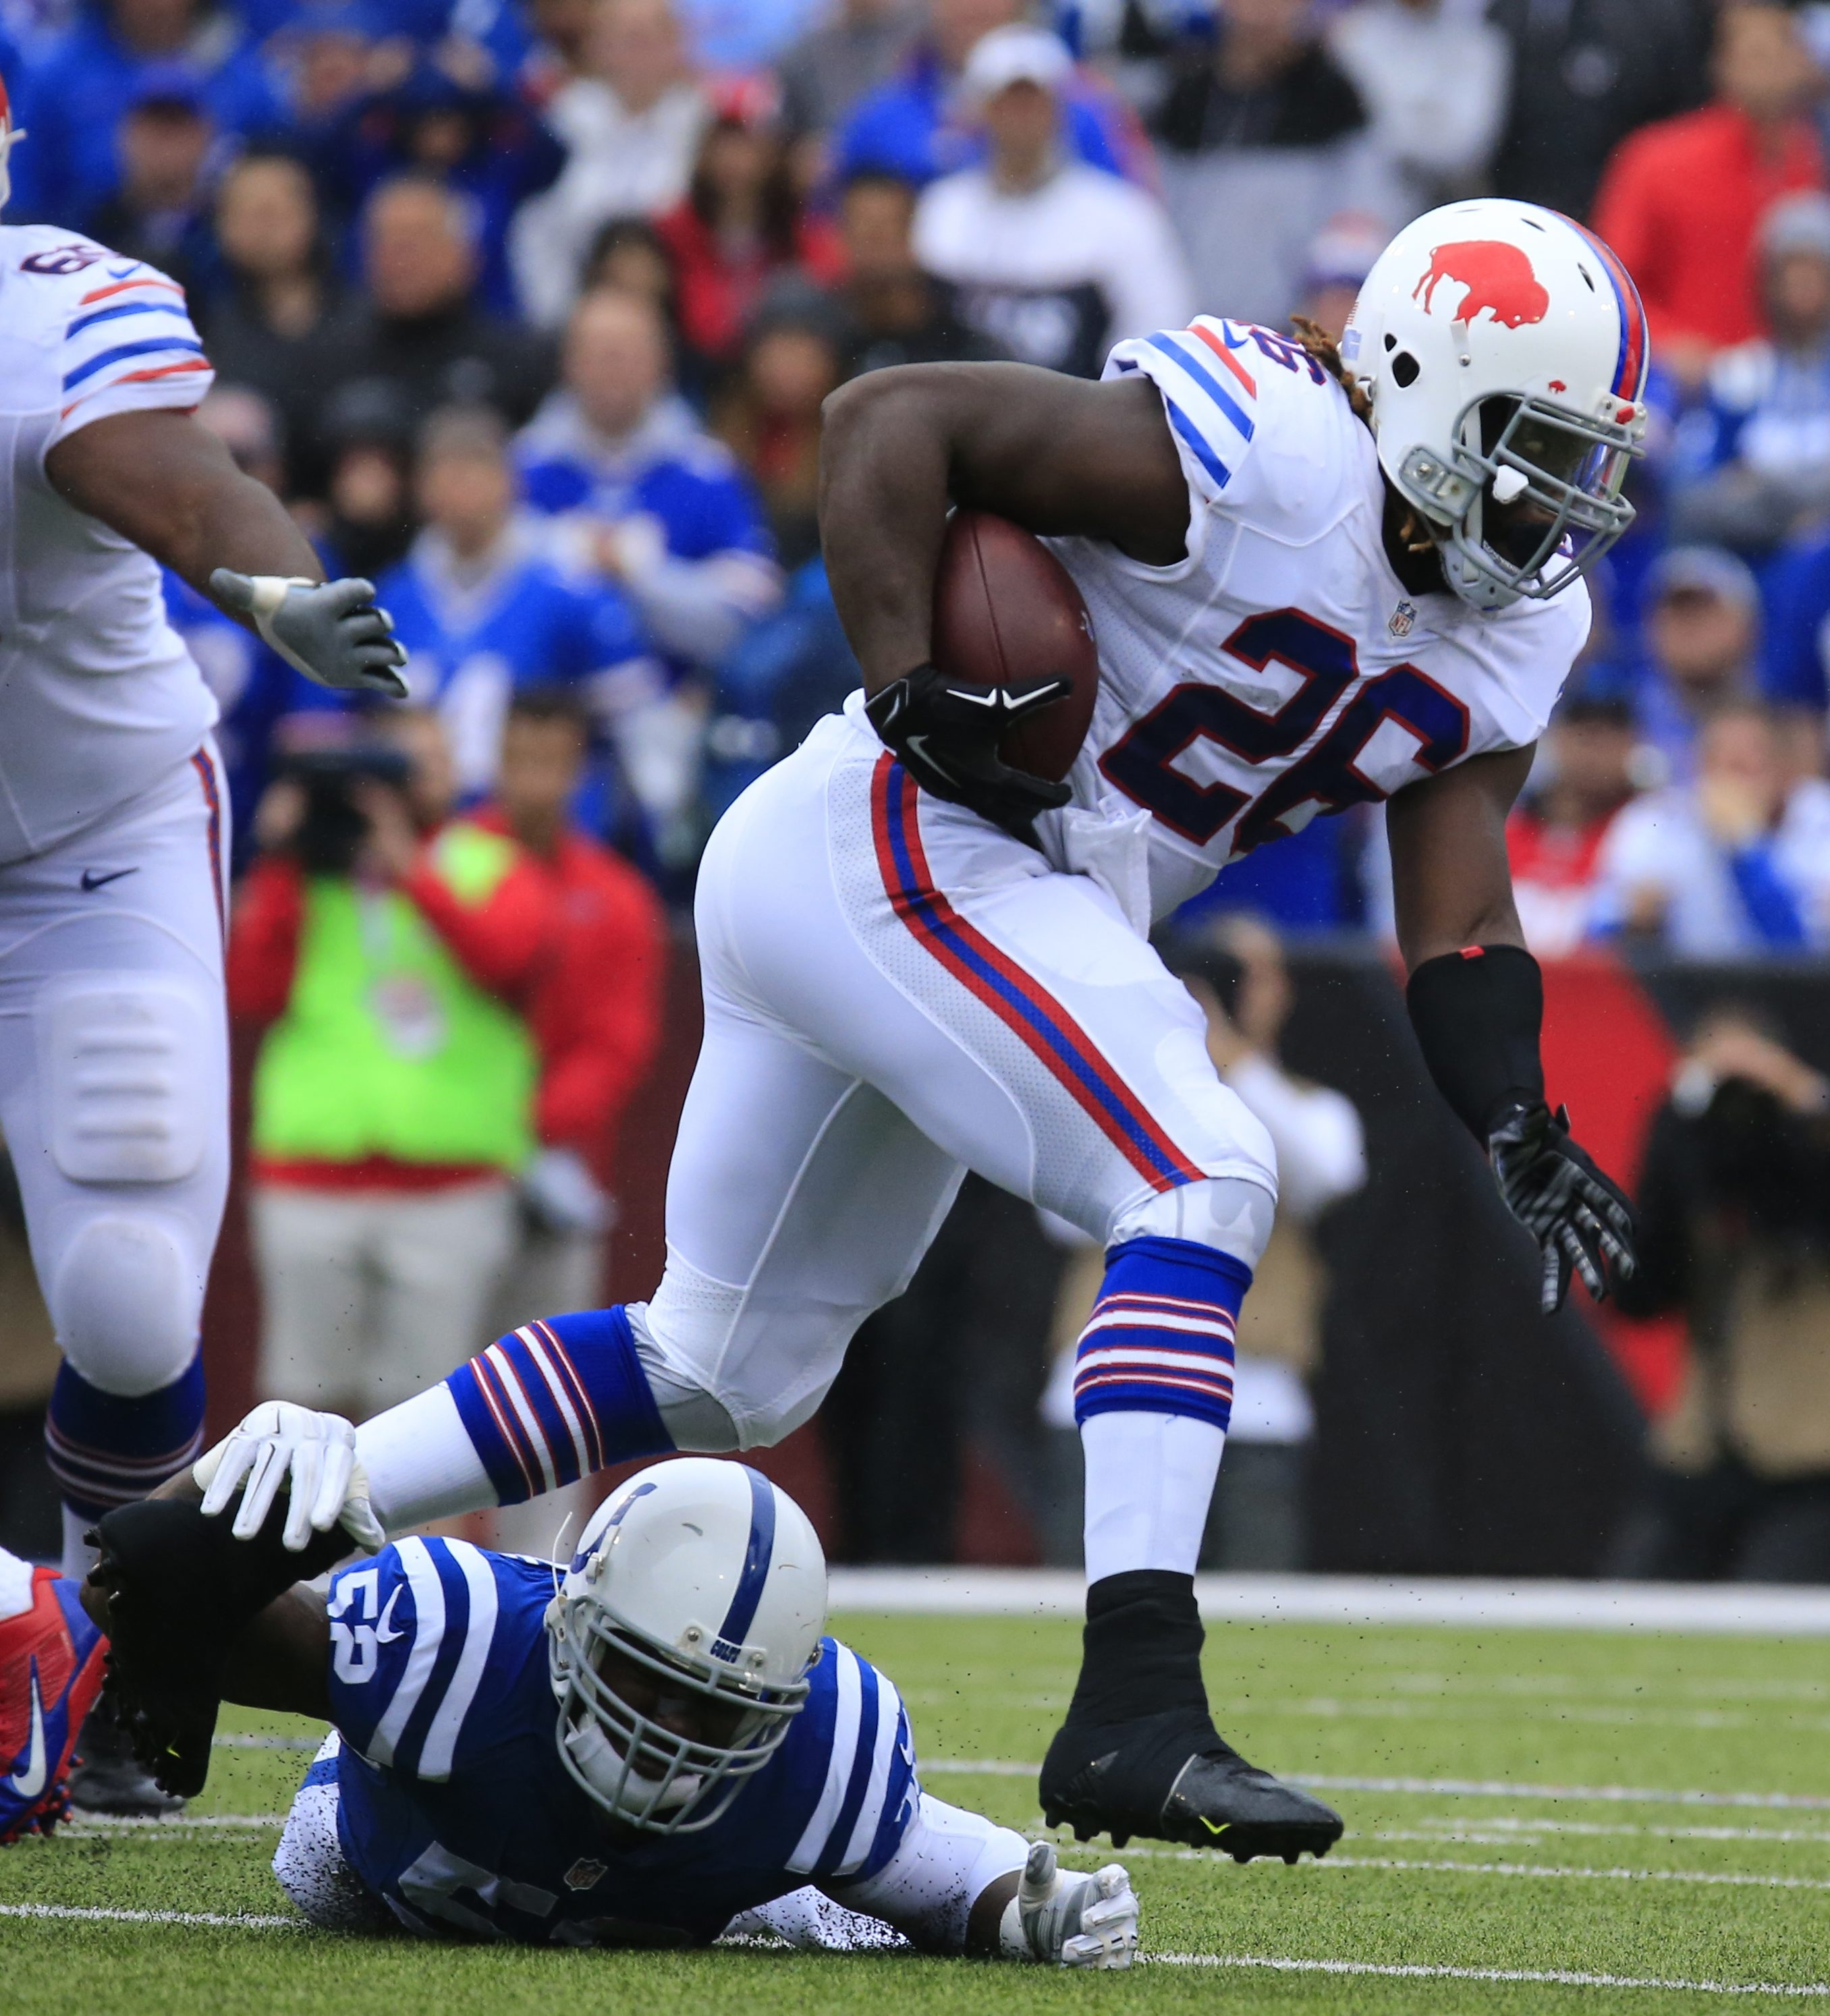 Buffalo Bills Boobie Dixon runs against the Indianapolis Colts during the second quarter at Ralph Wilson Stadium on Sunday, Sept. 13, 2015.  (Harry Scull Jr./Buffalo News)